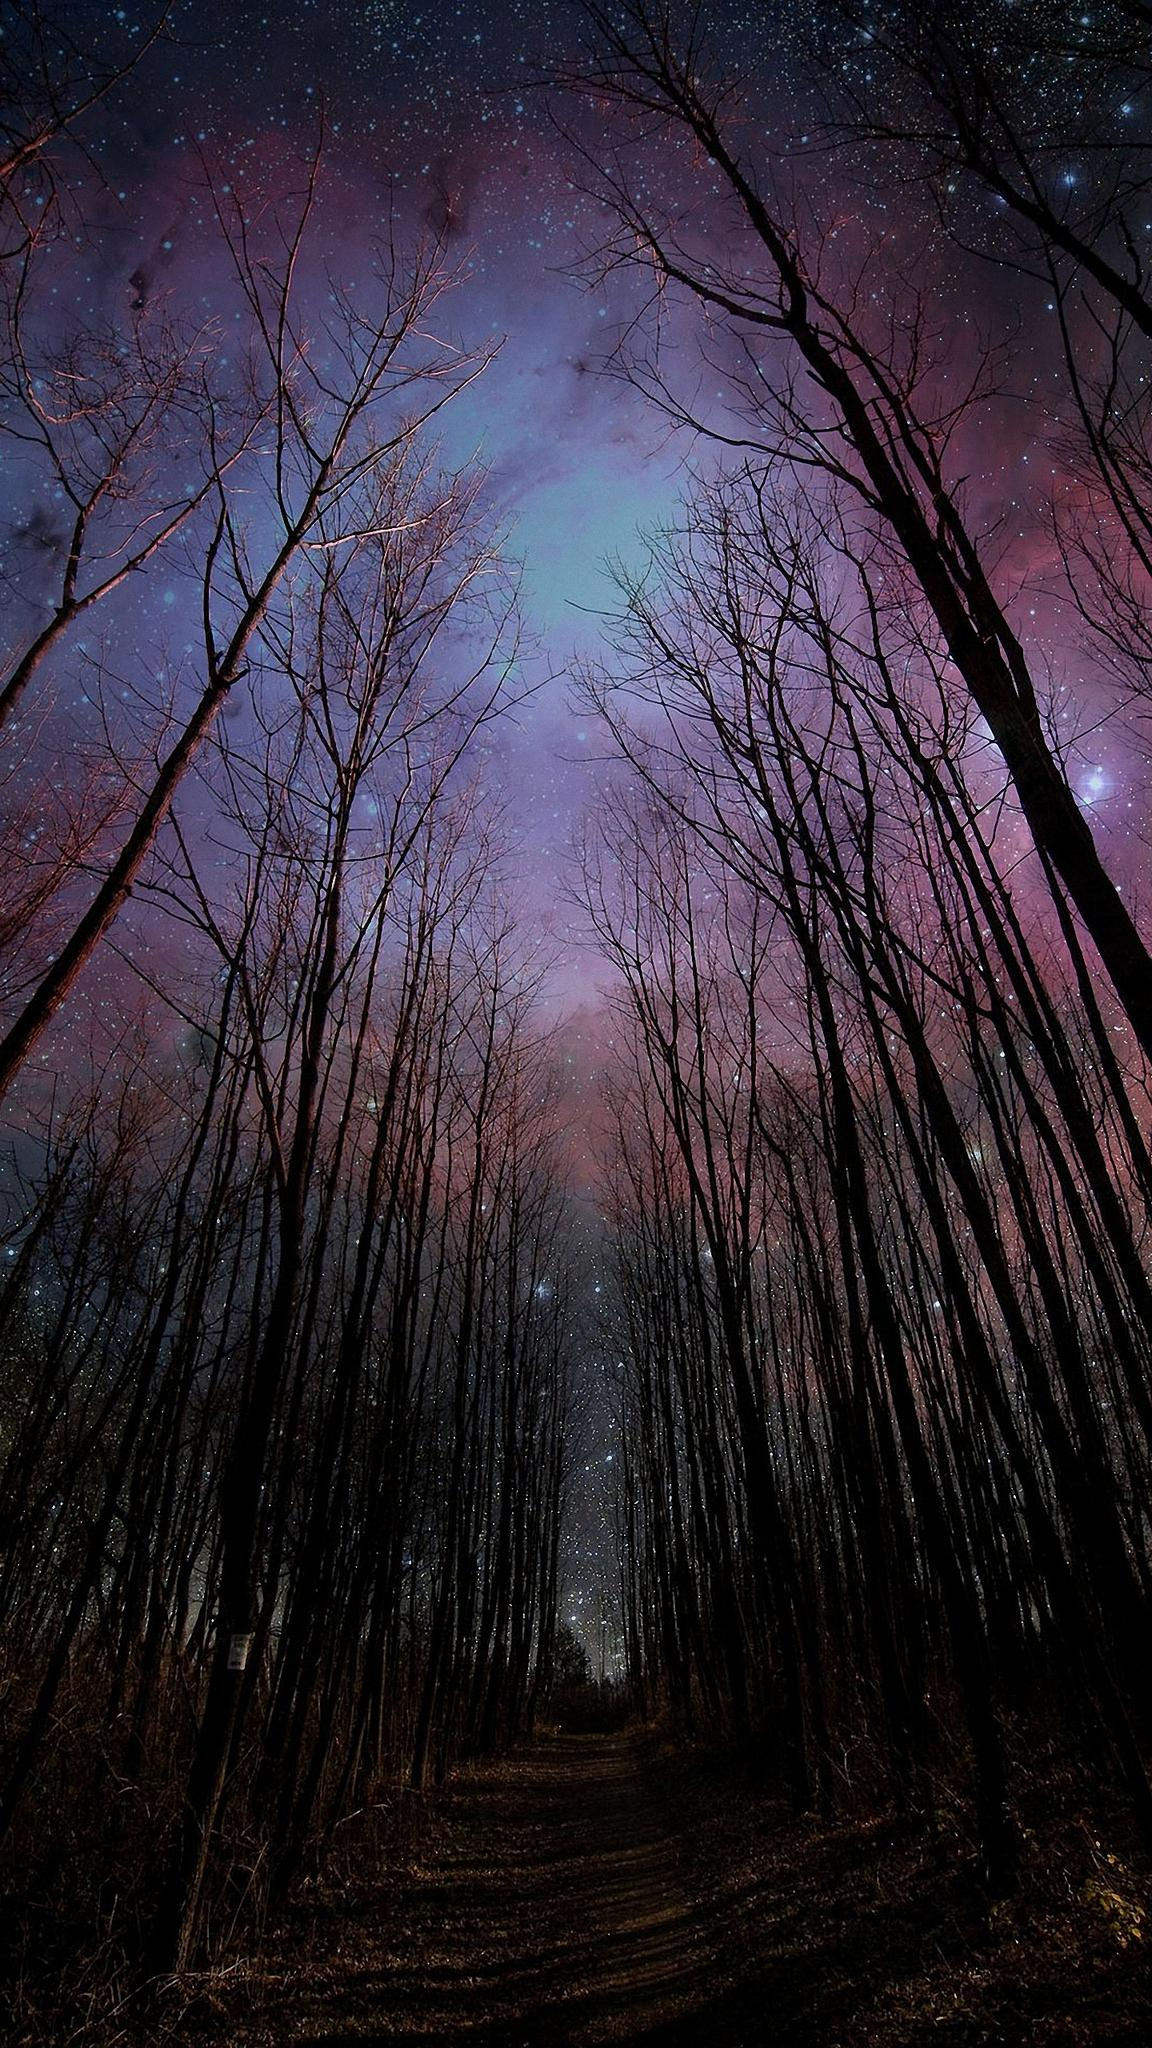 forest stars wood tree nature fog dark fall shadow park mystery branch